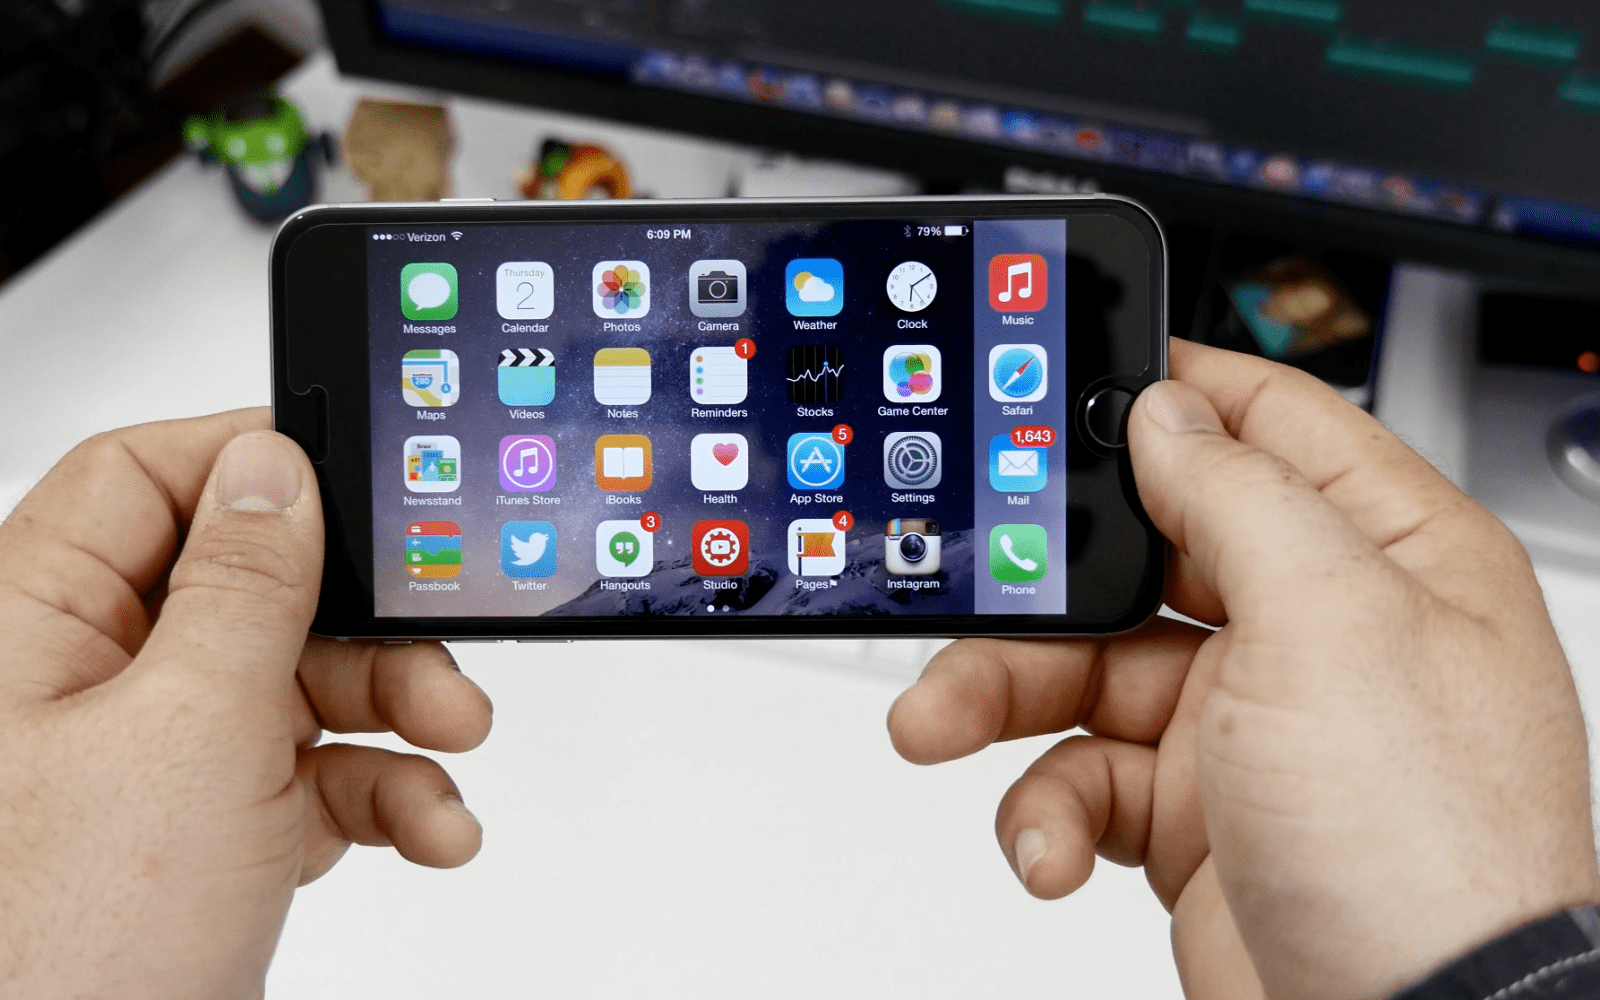 United Airlines buys iPhone 6 Plus for all its flight attendants to handle payments, manuals & more